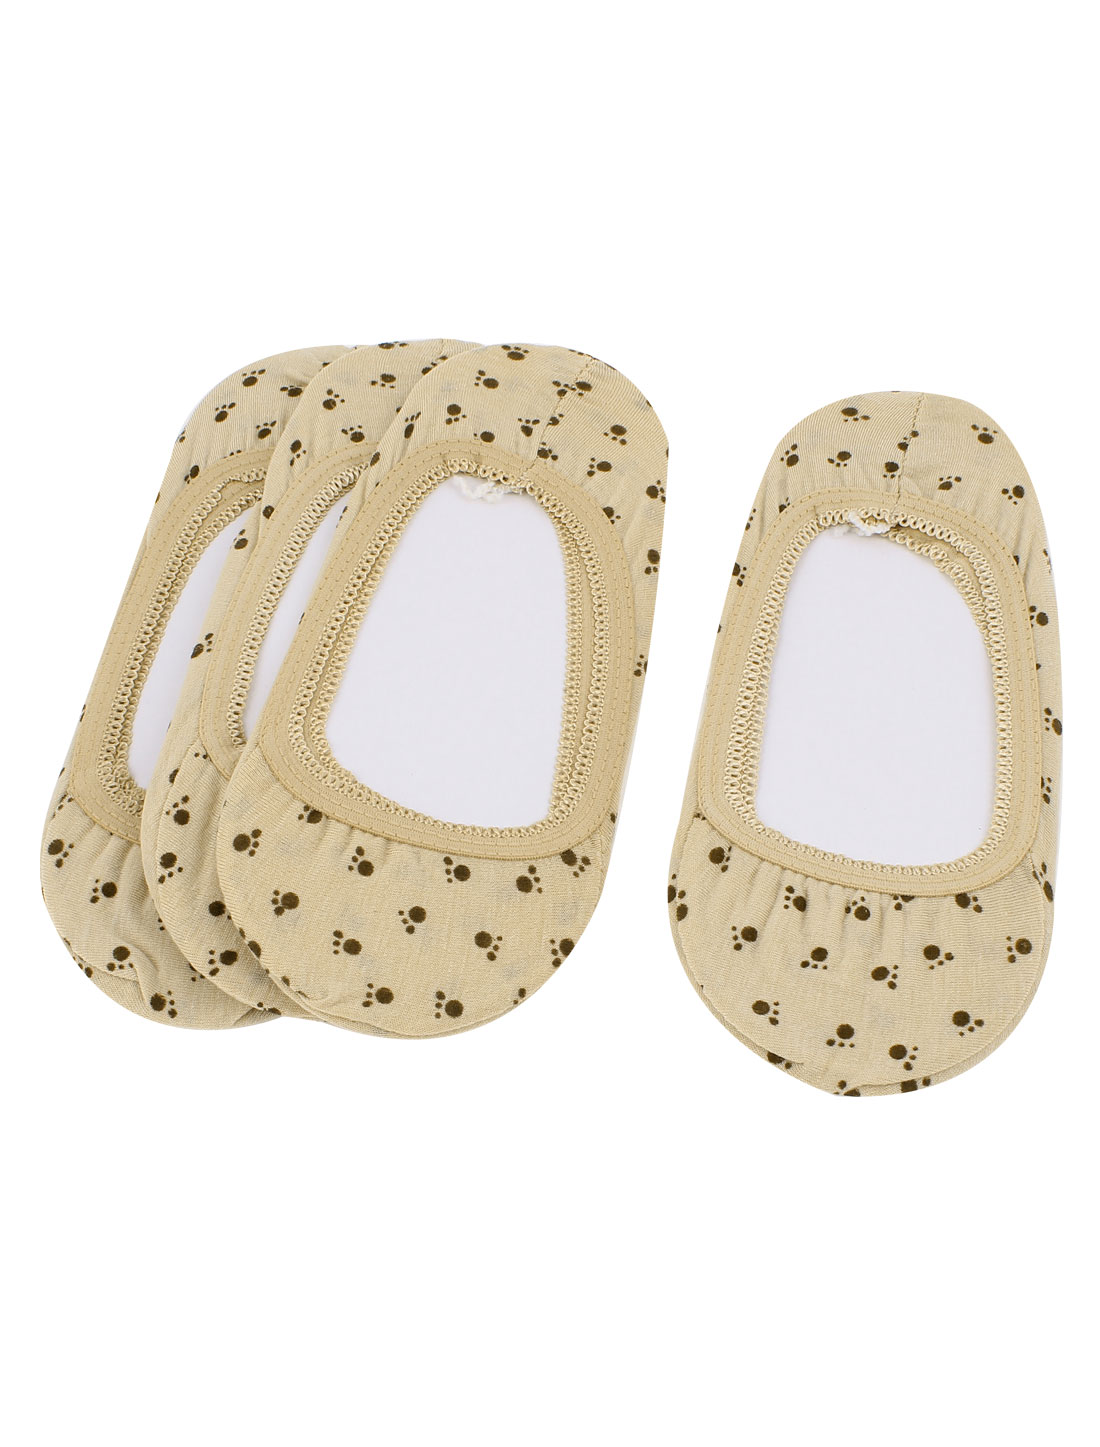 4Pairs Footprint Pattern Stretch Ballet Footie Invisible Low Cut Heels Loafer Liner Boat Socks Socken Khaki for Lady